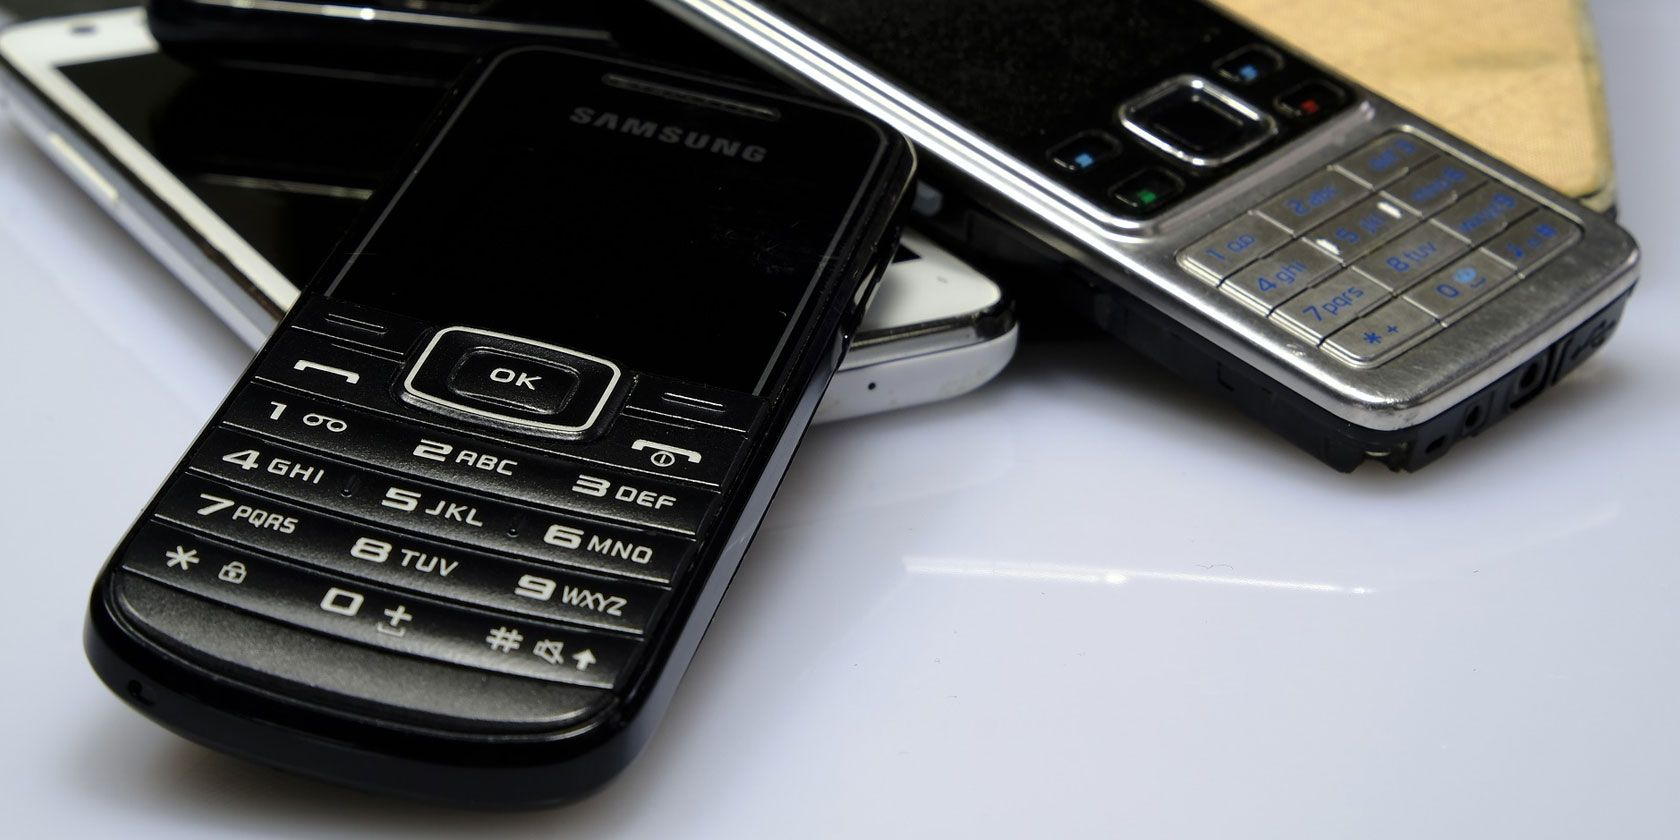 5 Reasons Why Smartphones Are More Secure Than Dumb Phones